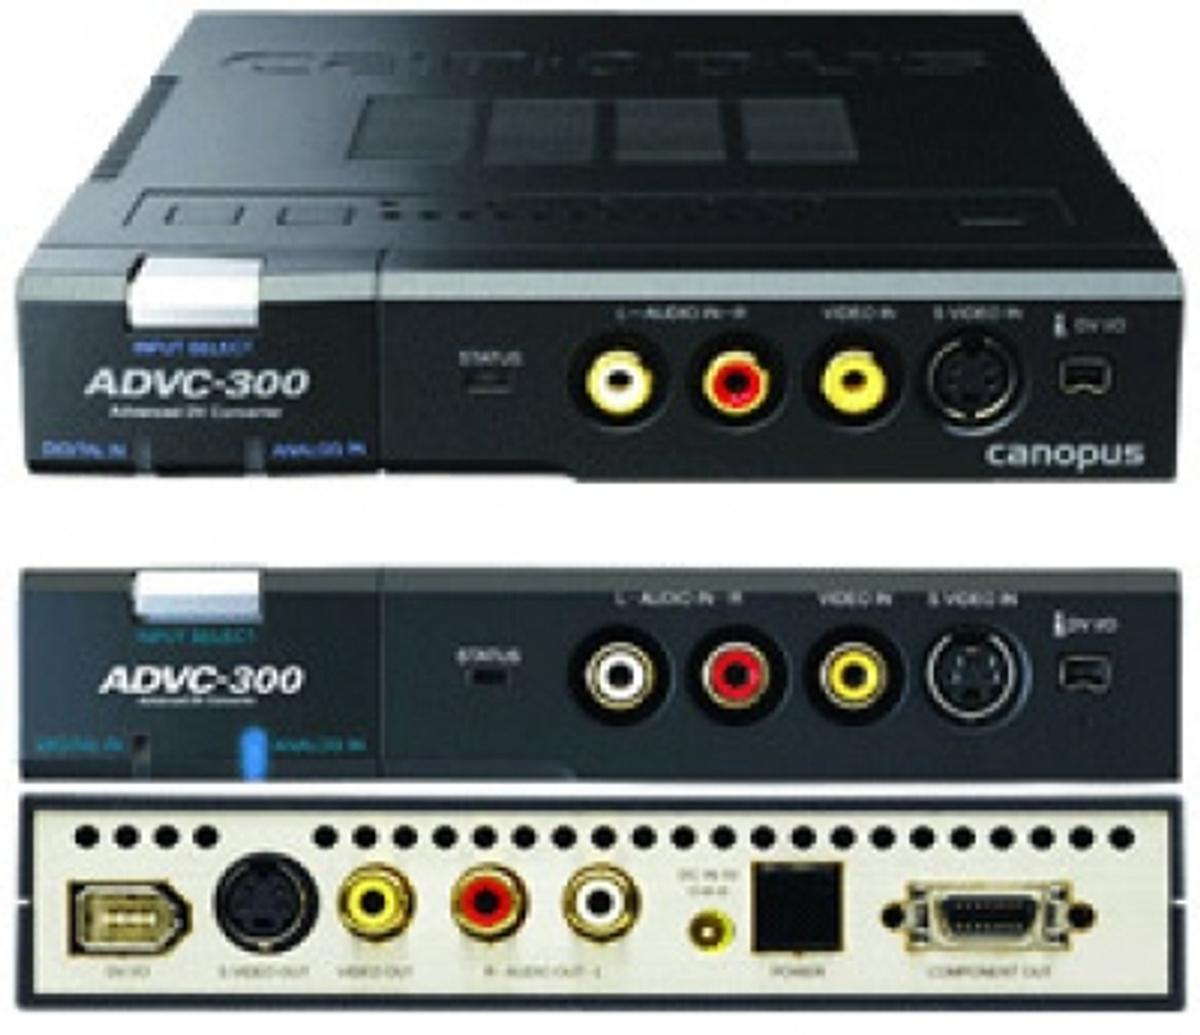 ADVC 300 WINDOWS 7 DRIVER